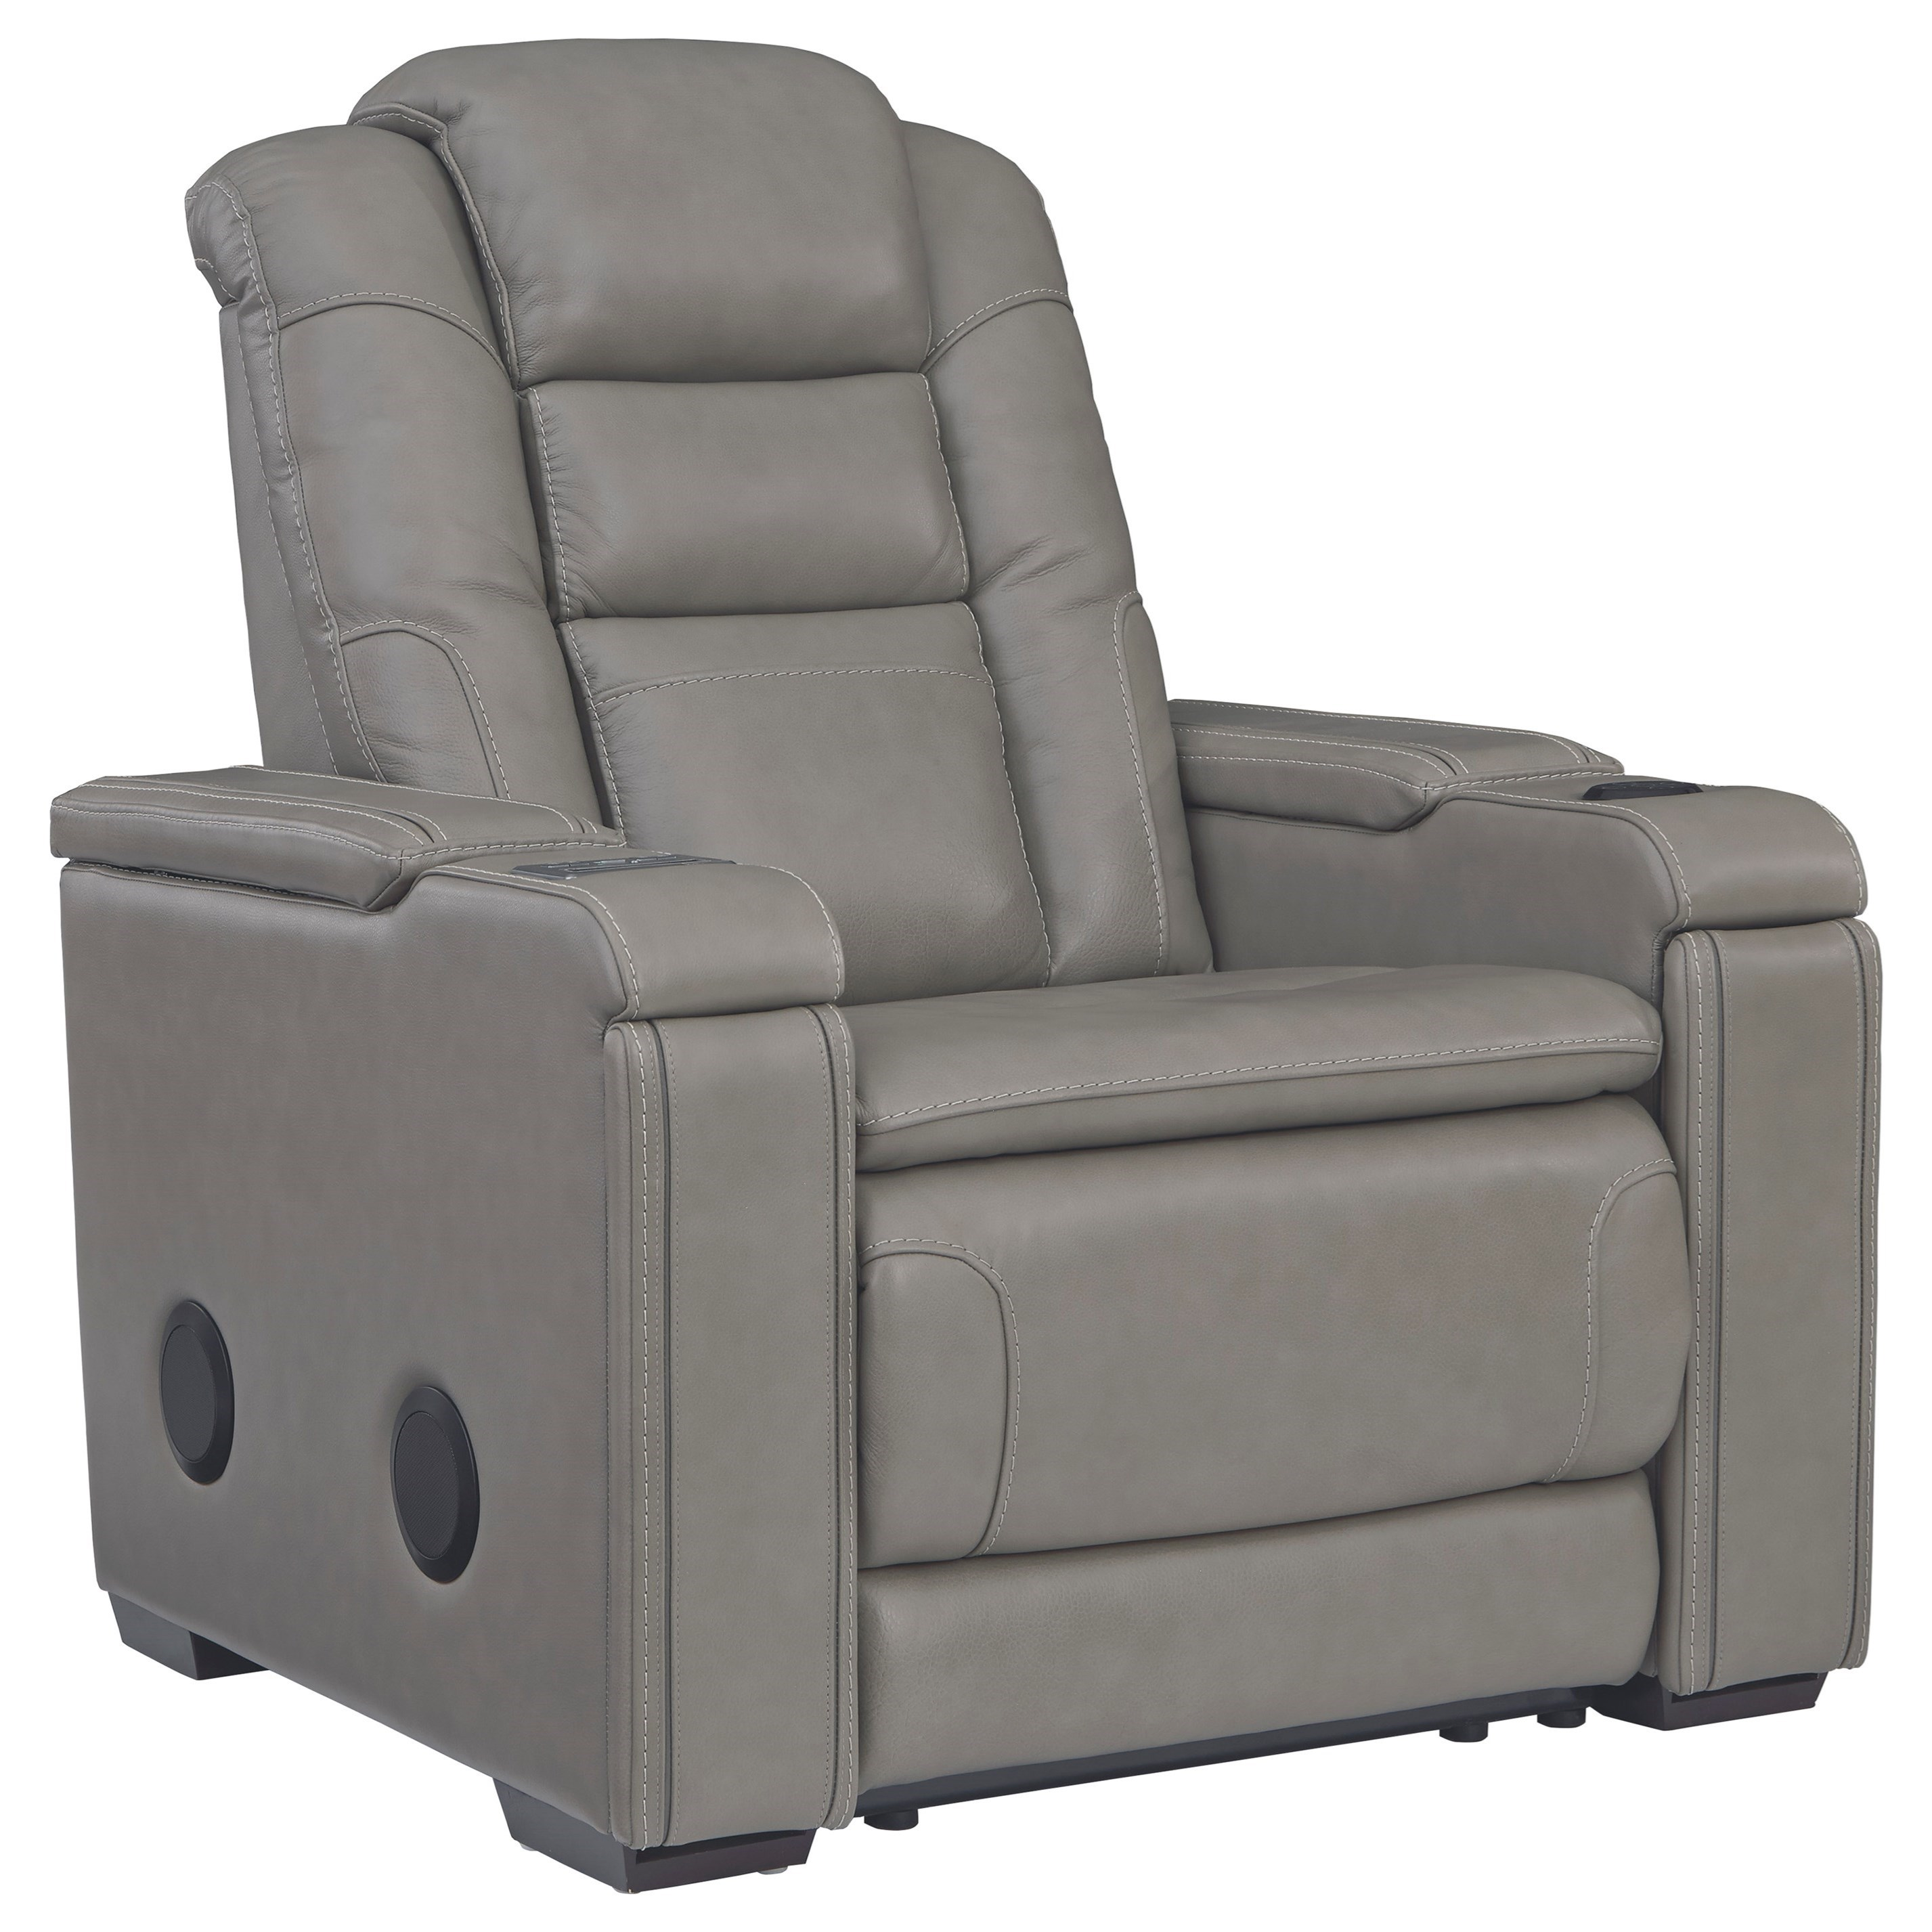 Boerna Power Recliner with Adjustable Headrest by Signature Design by Ashley at Standard Furniture